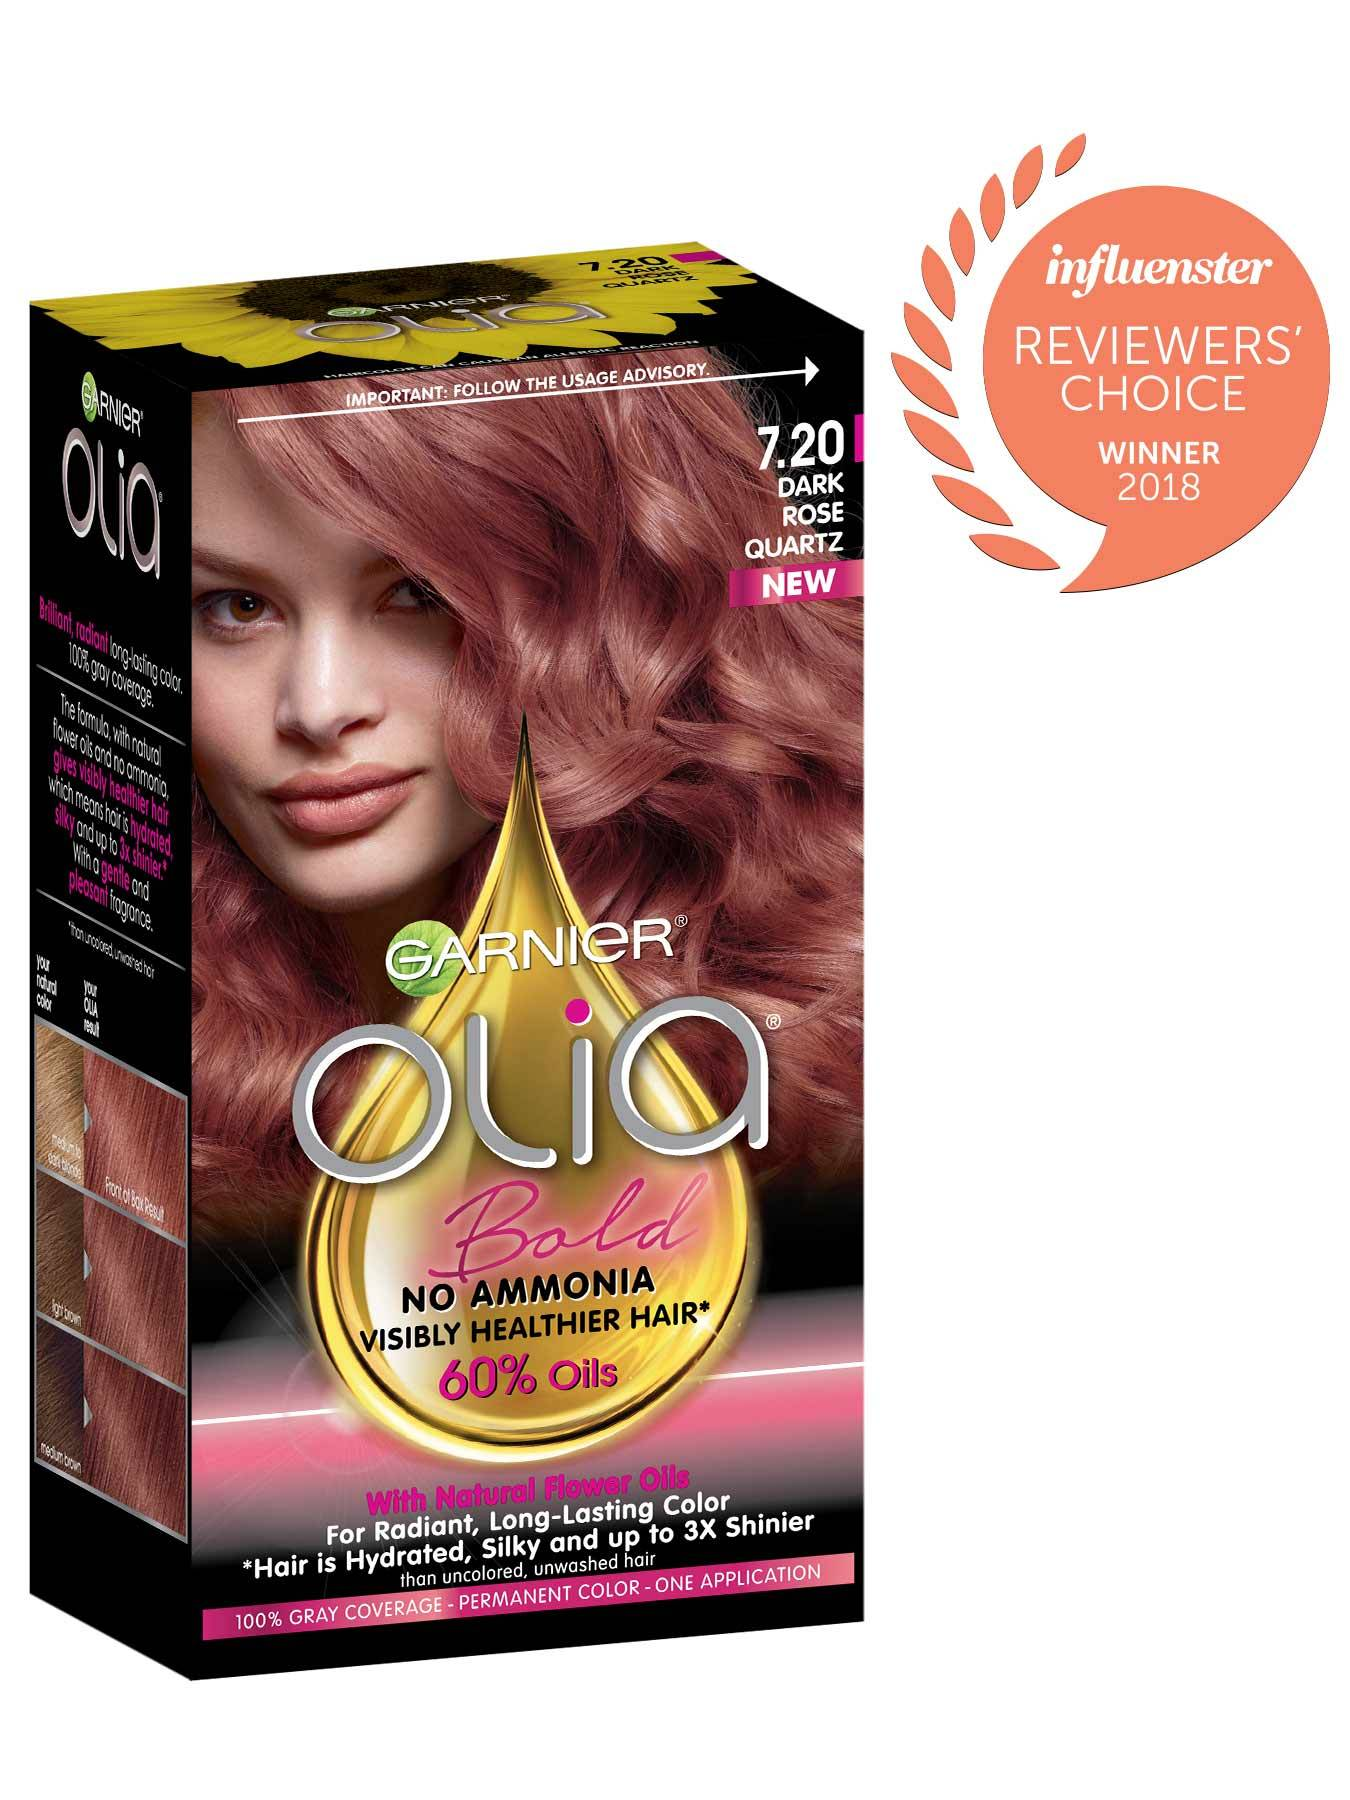 Dark Red Hair Color Olia Hair Color Oil Powered